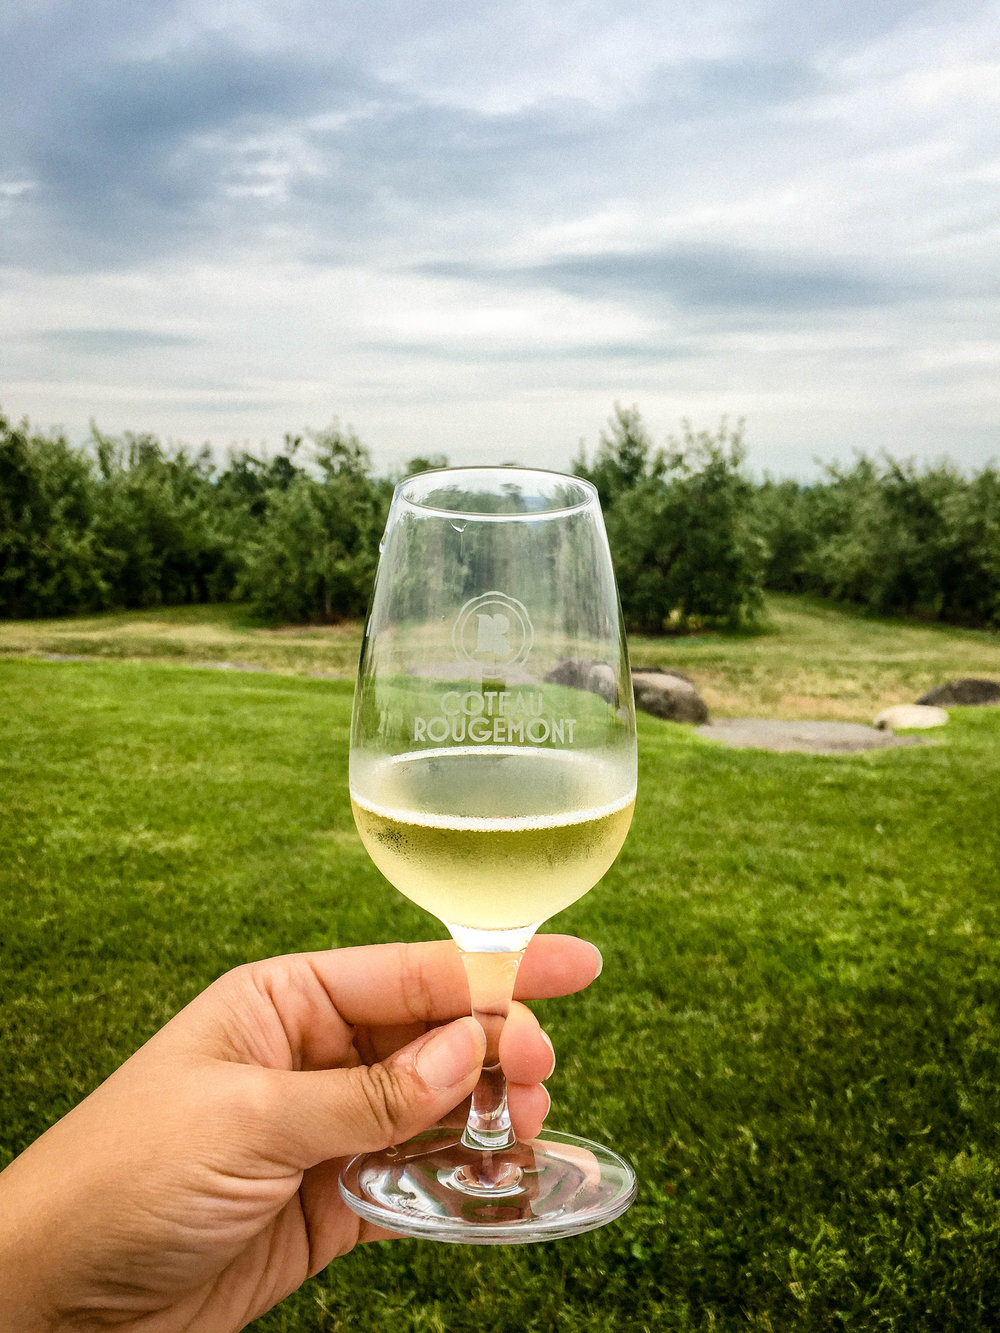 Sparkling cider at Coteau Rougemont